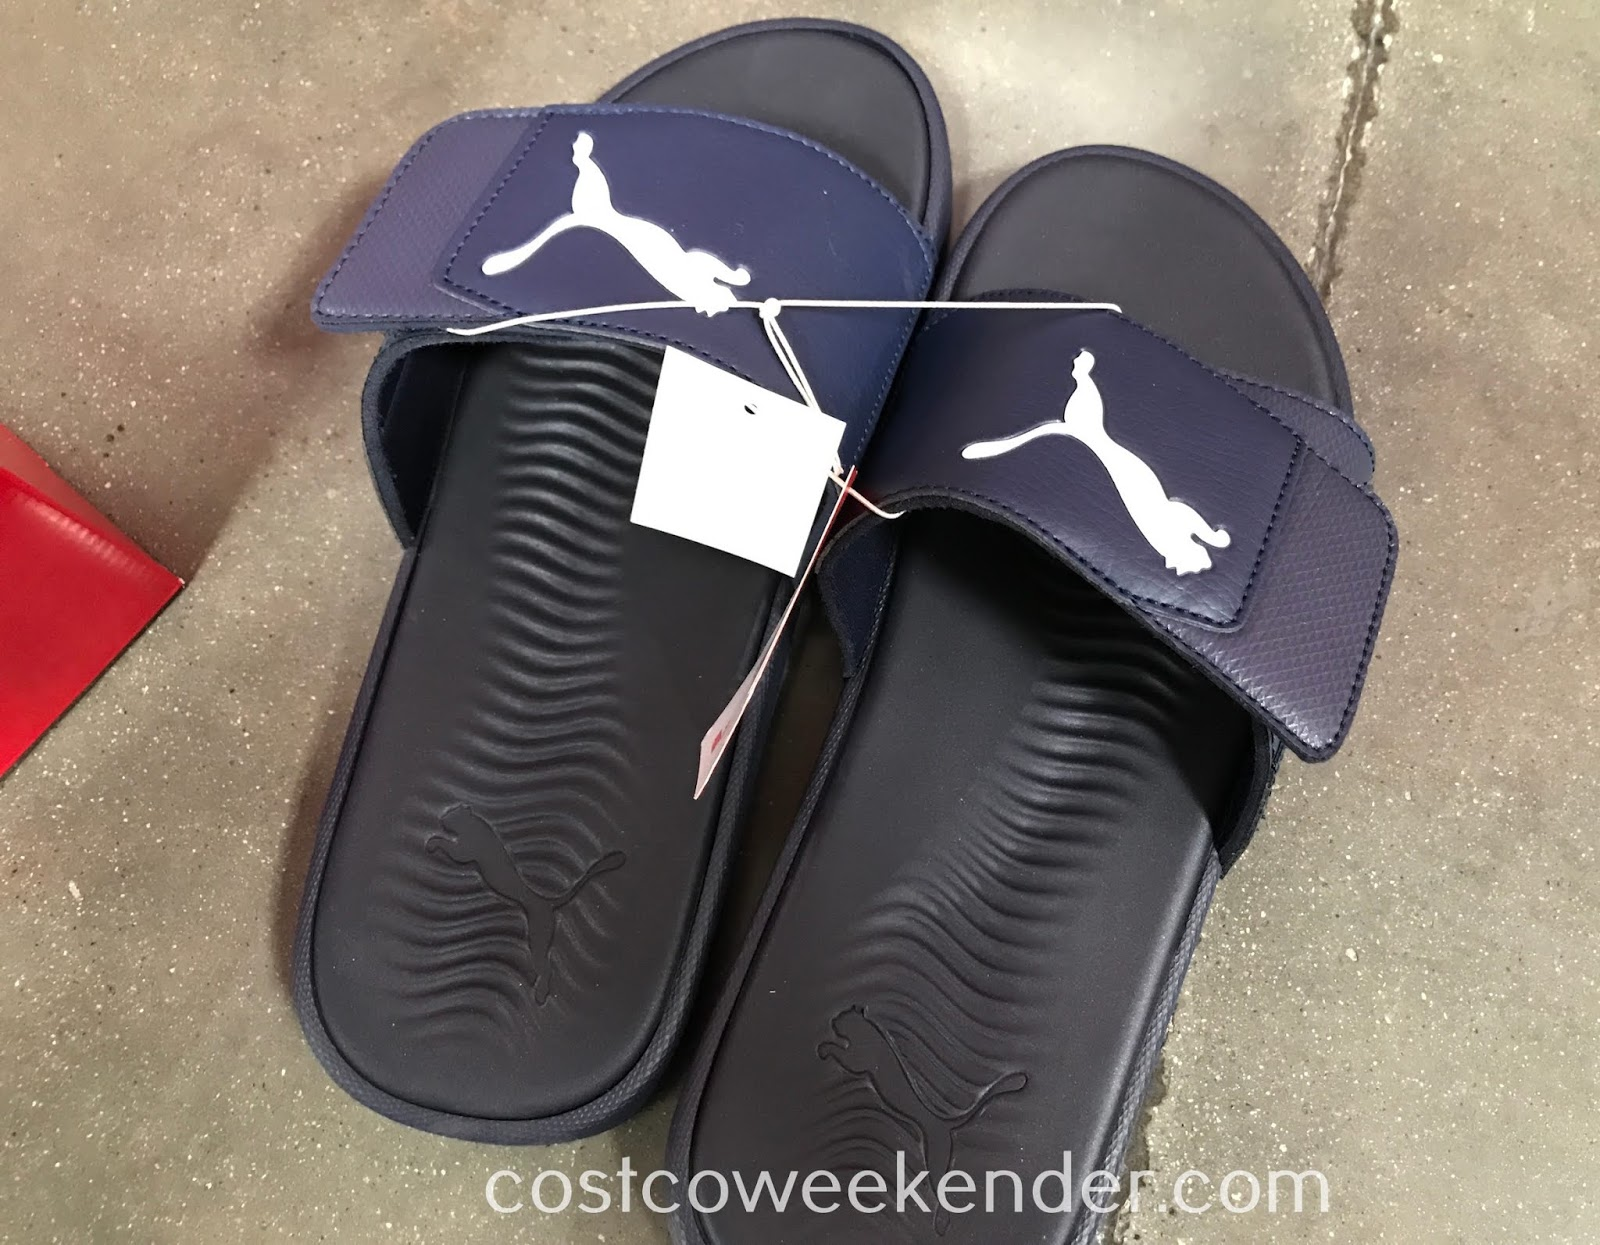 fecee74be449 Walk around outside or even in the house in these Puma Men s Starcat Tech  Slide Sandals